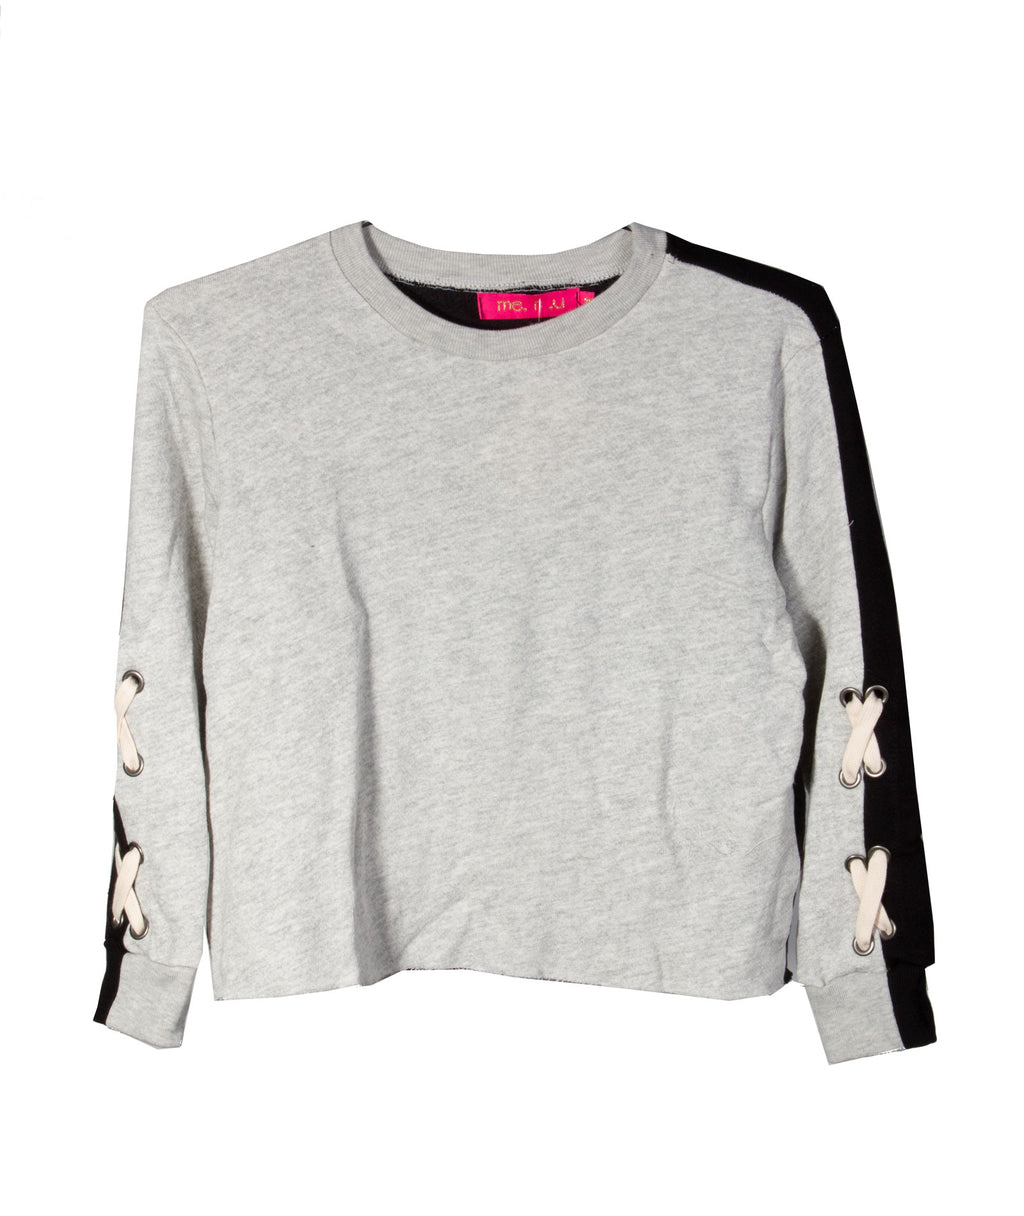 Me.n.u. Girls Grey and Black Lace-Up Sweater